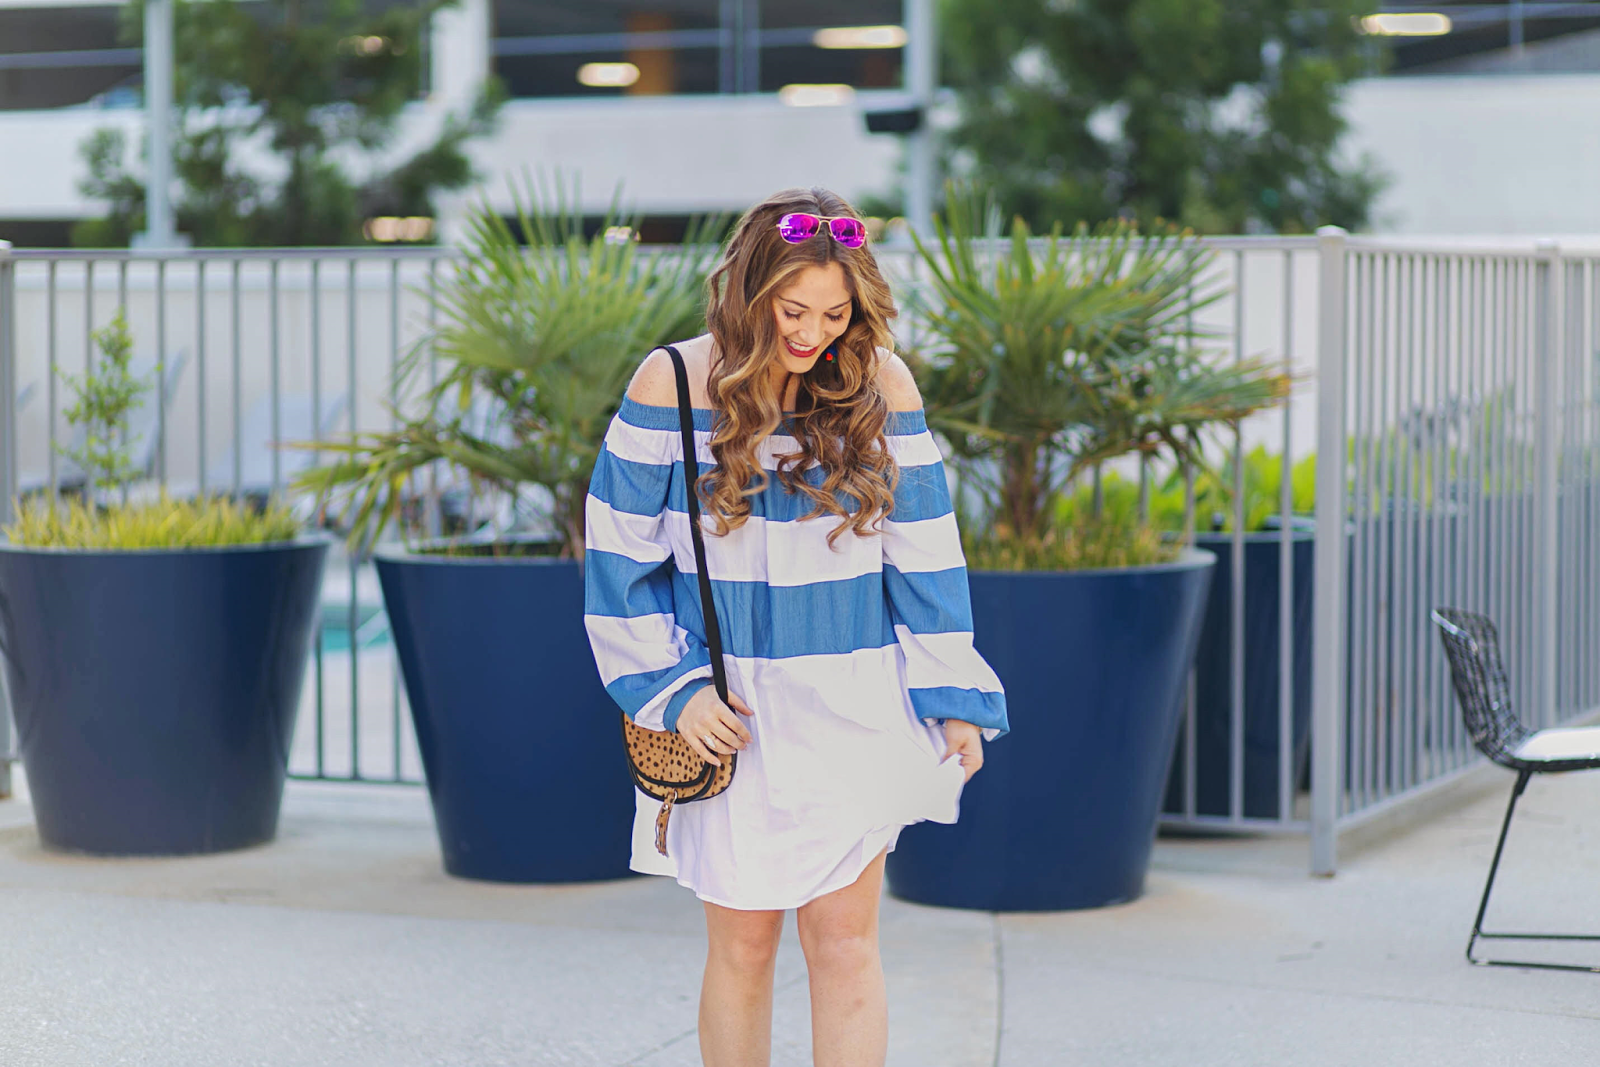 Trend Spin Linkup - Favorite Sunglasses by fashion blogger Laura form Walking in Memphis in High Heels